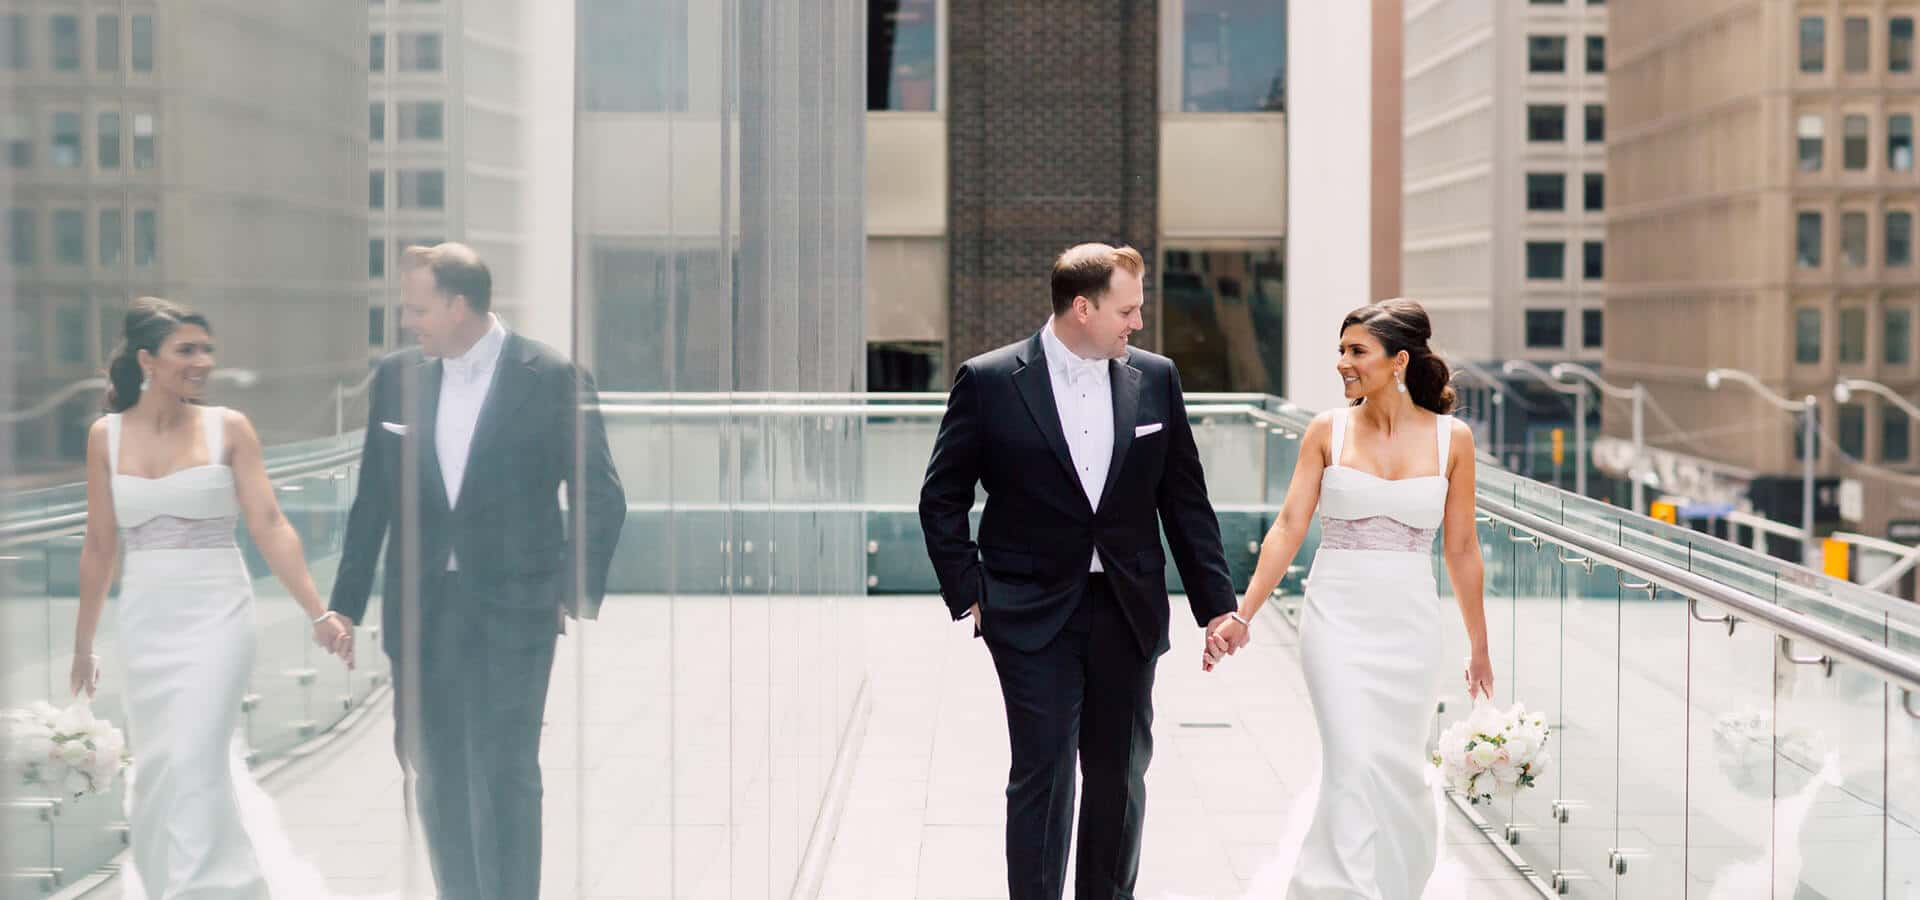 Hero image for Shibayle and Chris' Charmingly Elegant Wedding at the Four Seasons